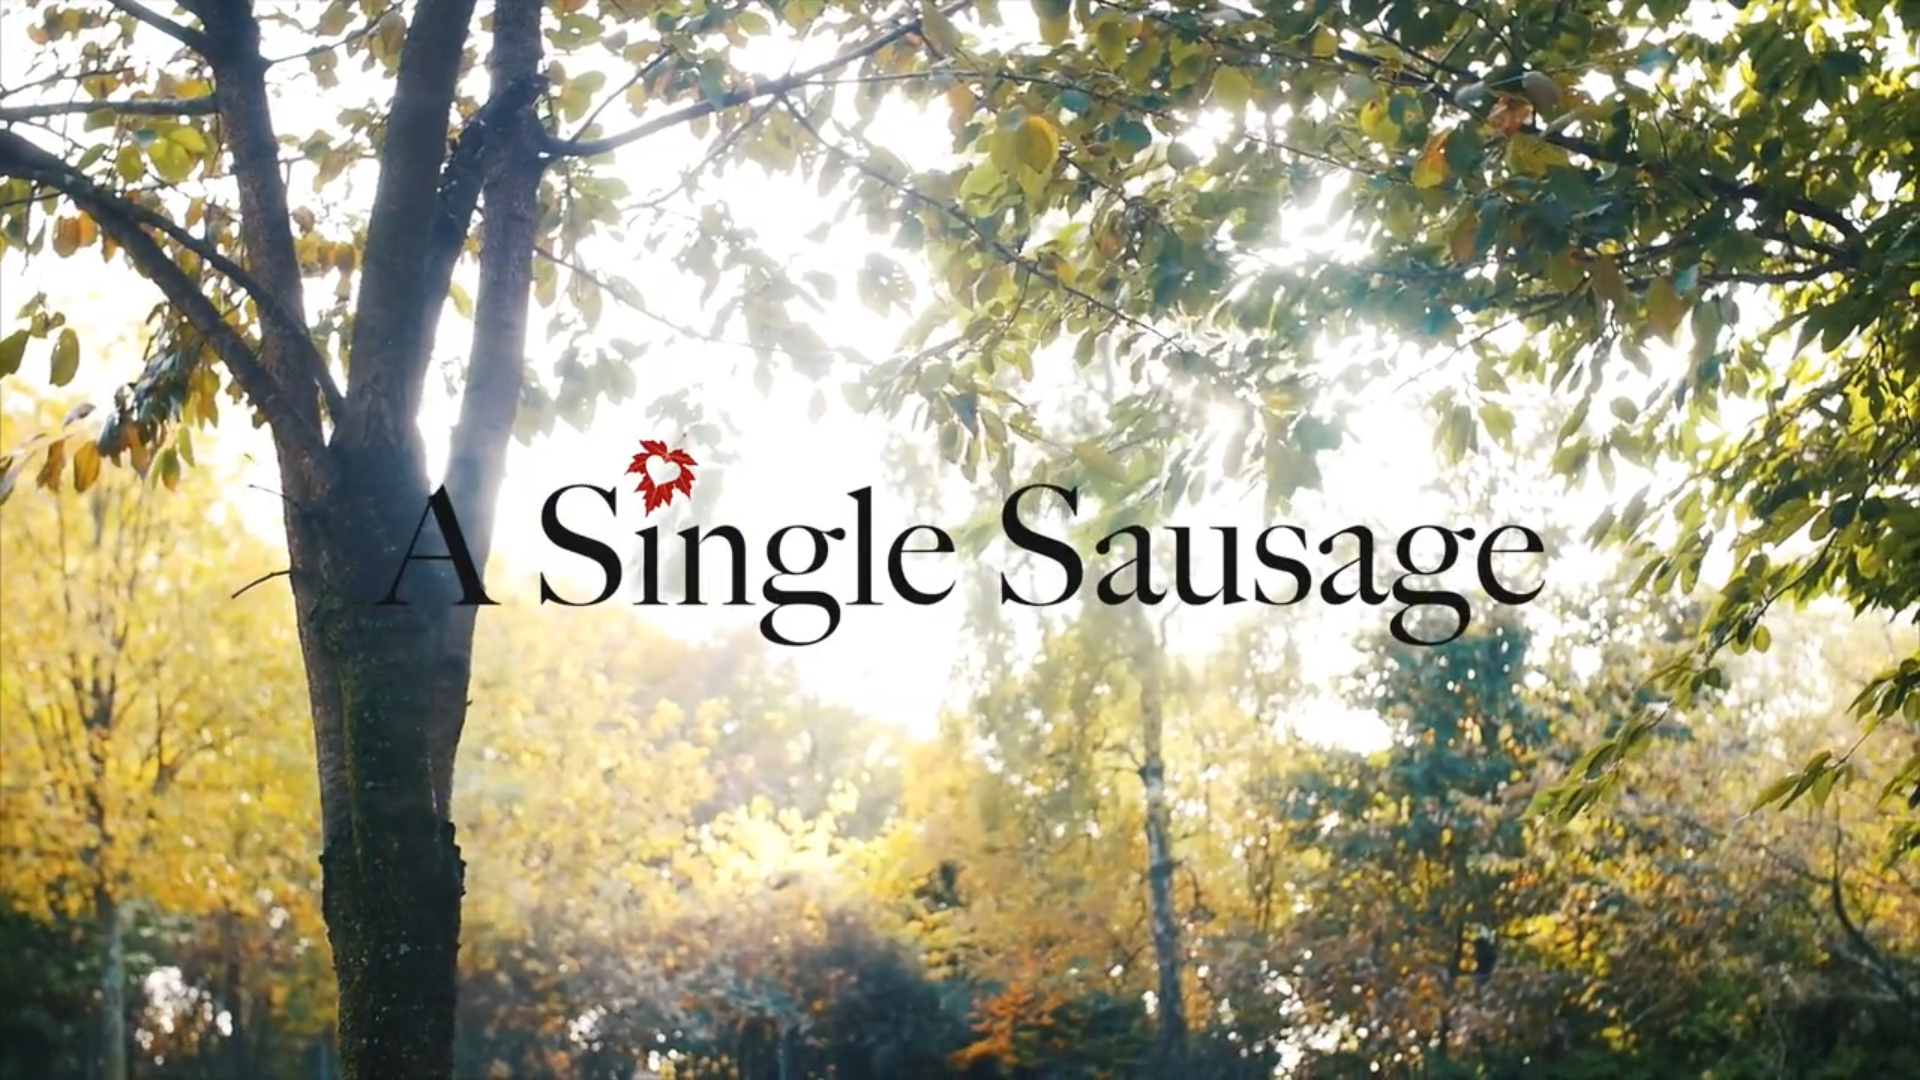 Short Film - A Single Sausage